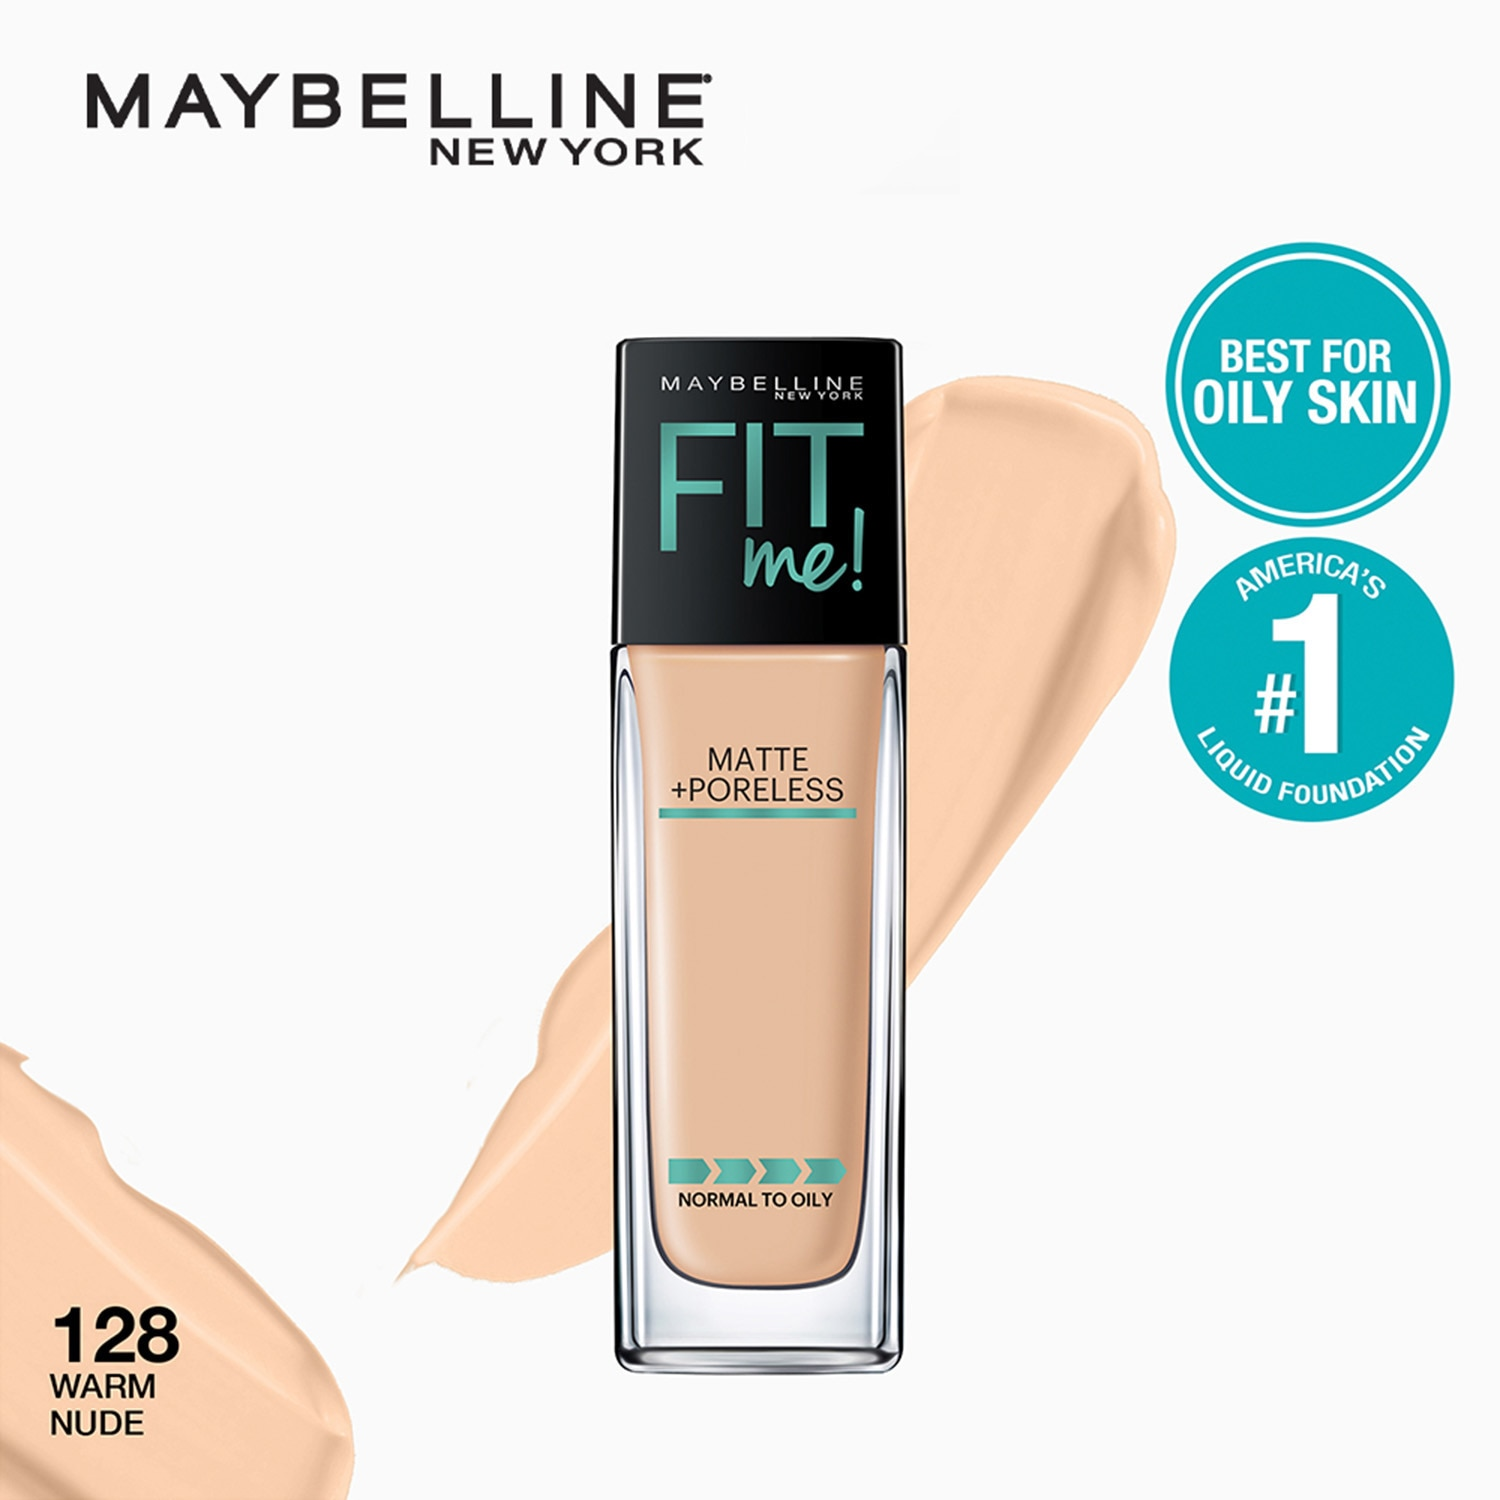 Fit Me Matte+Poreless Liquid Foundation - 128 Warm Nude [USA Bestseller] by Maybelline 30ml